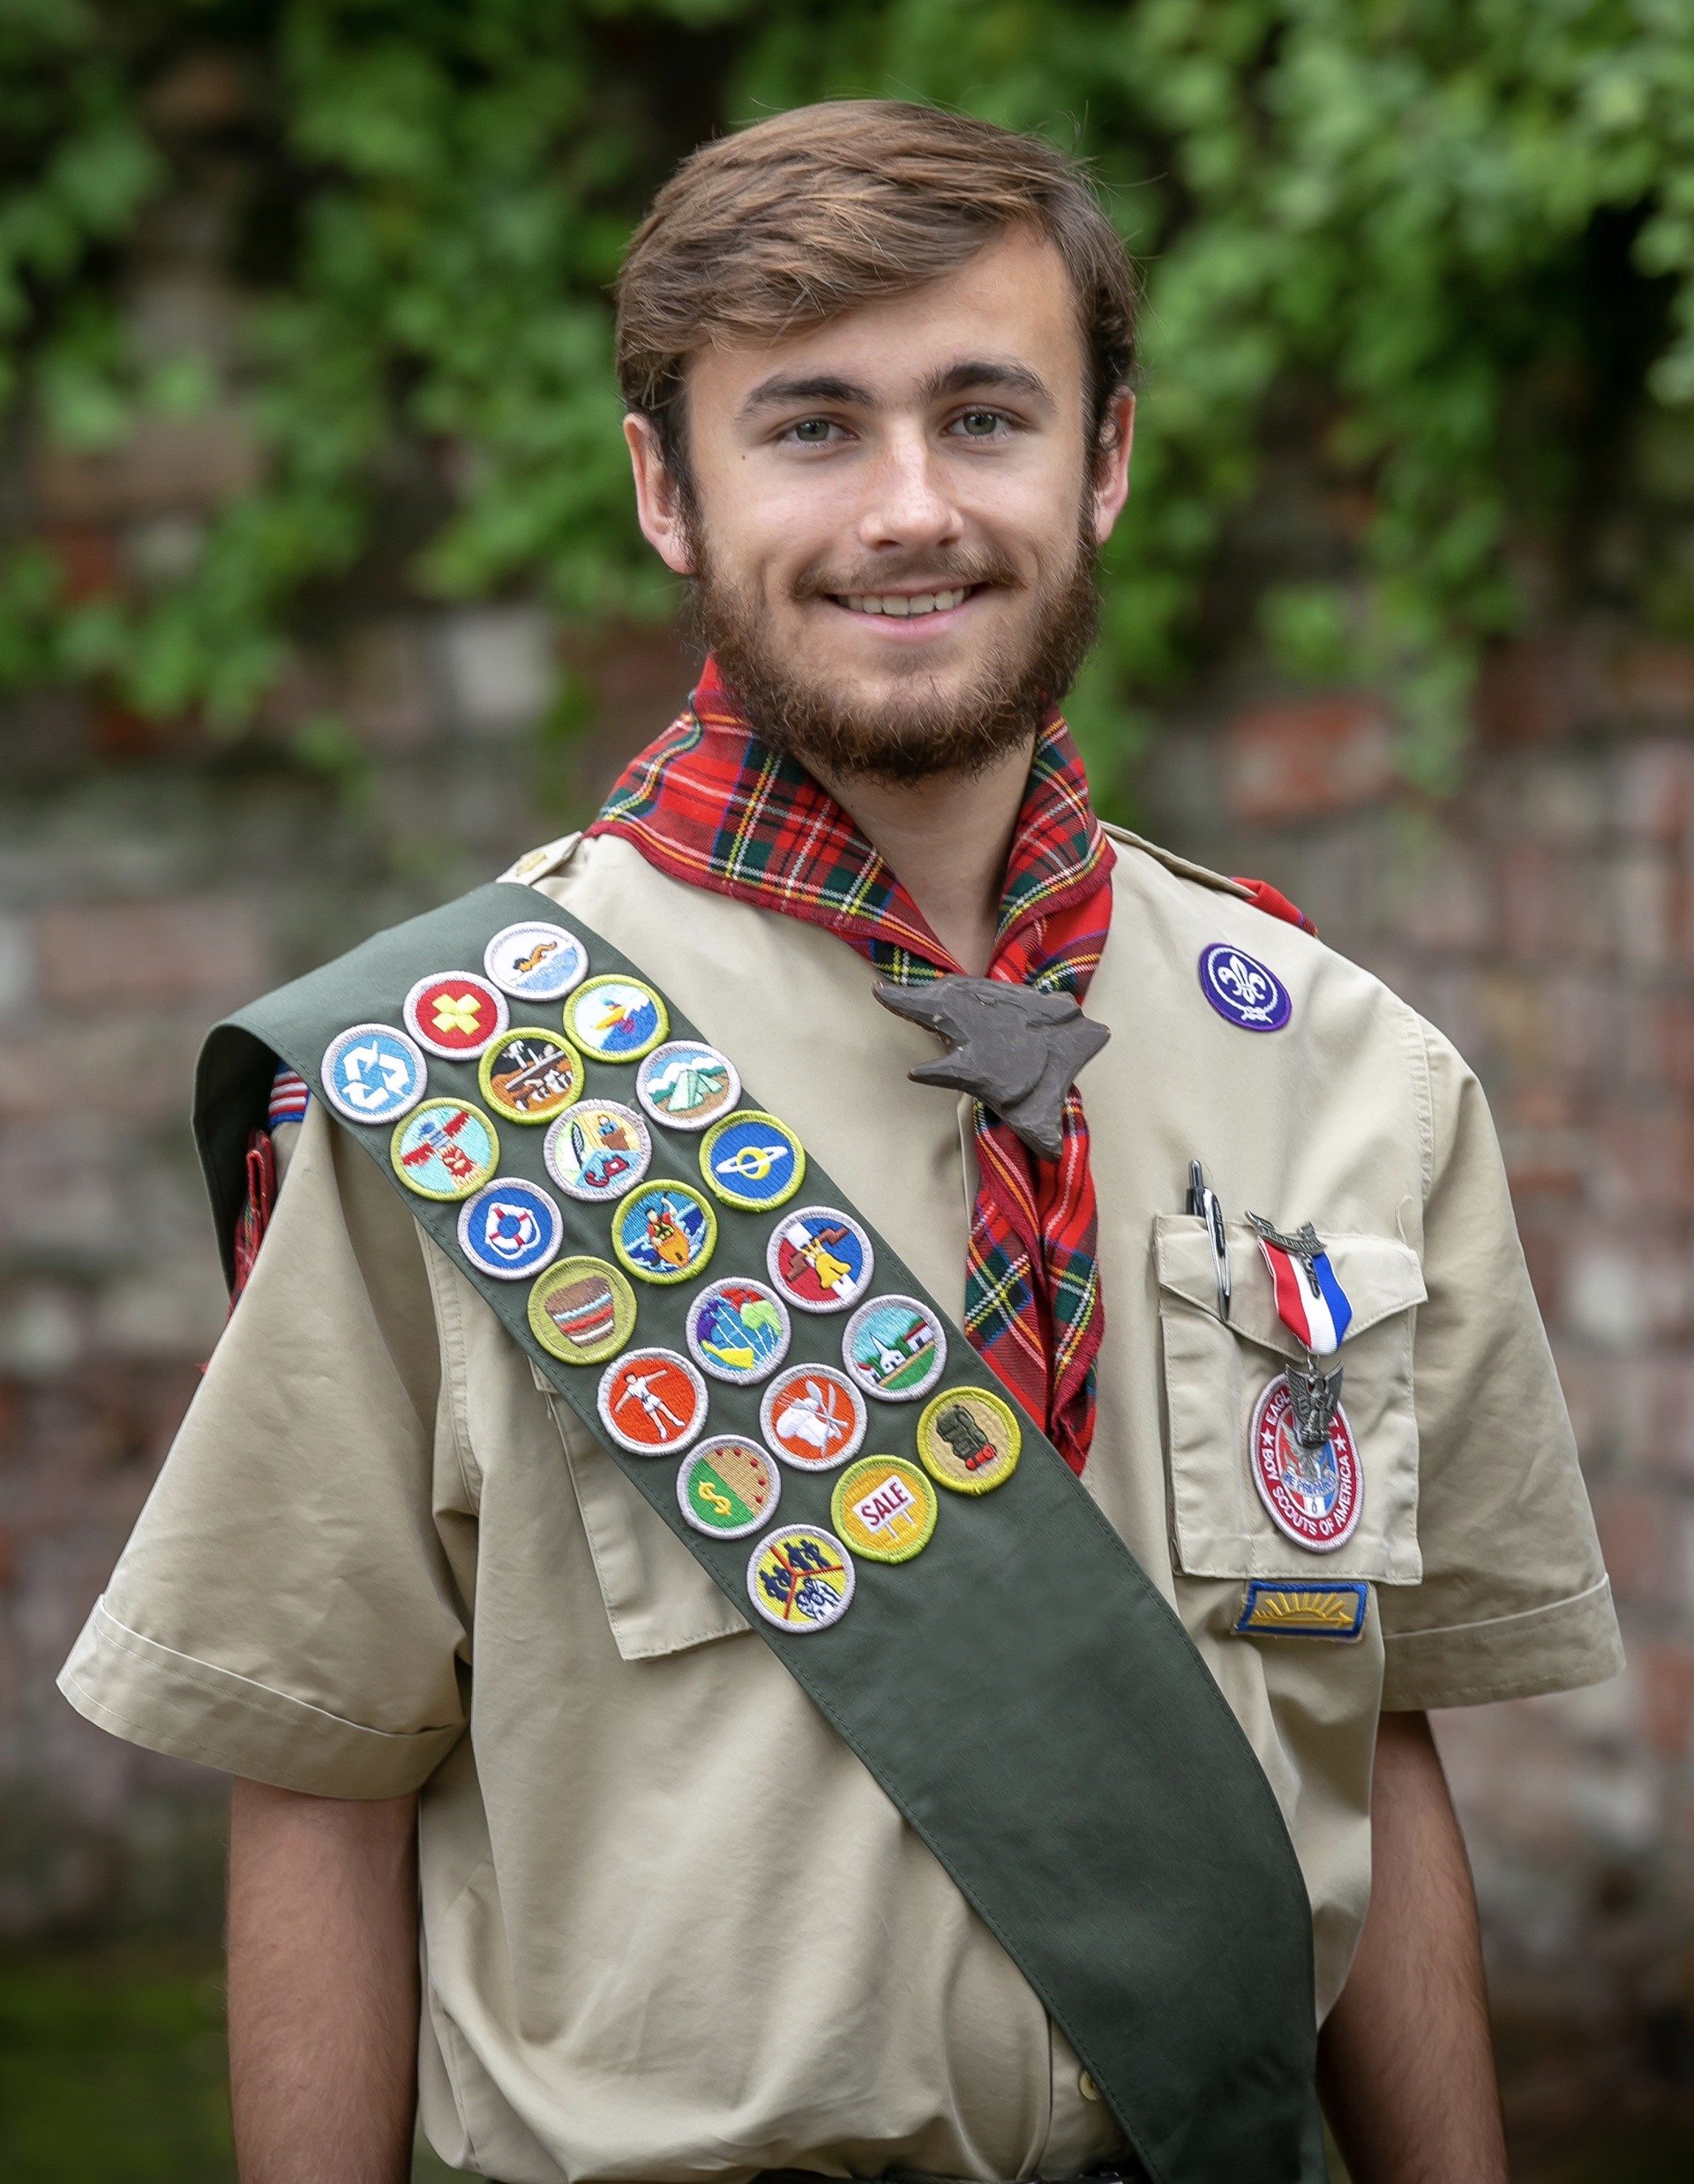 Eagle Scout Jon Davis, a Senior Patrol Leader for Troop 204 in Lafayette, is making himself available to shop for seniors local to him who need food or hardware supplies over the next few weeks.